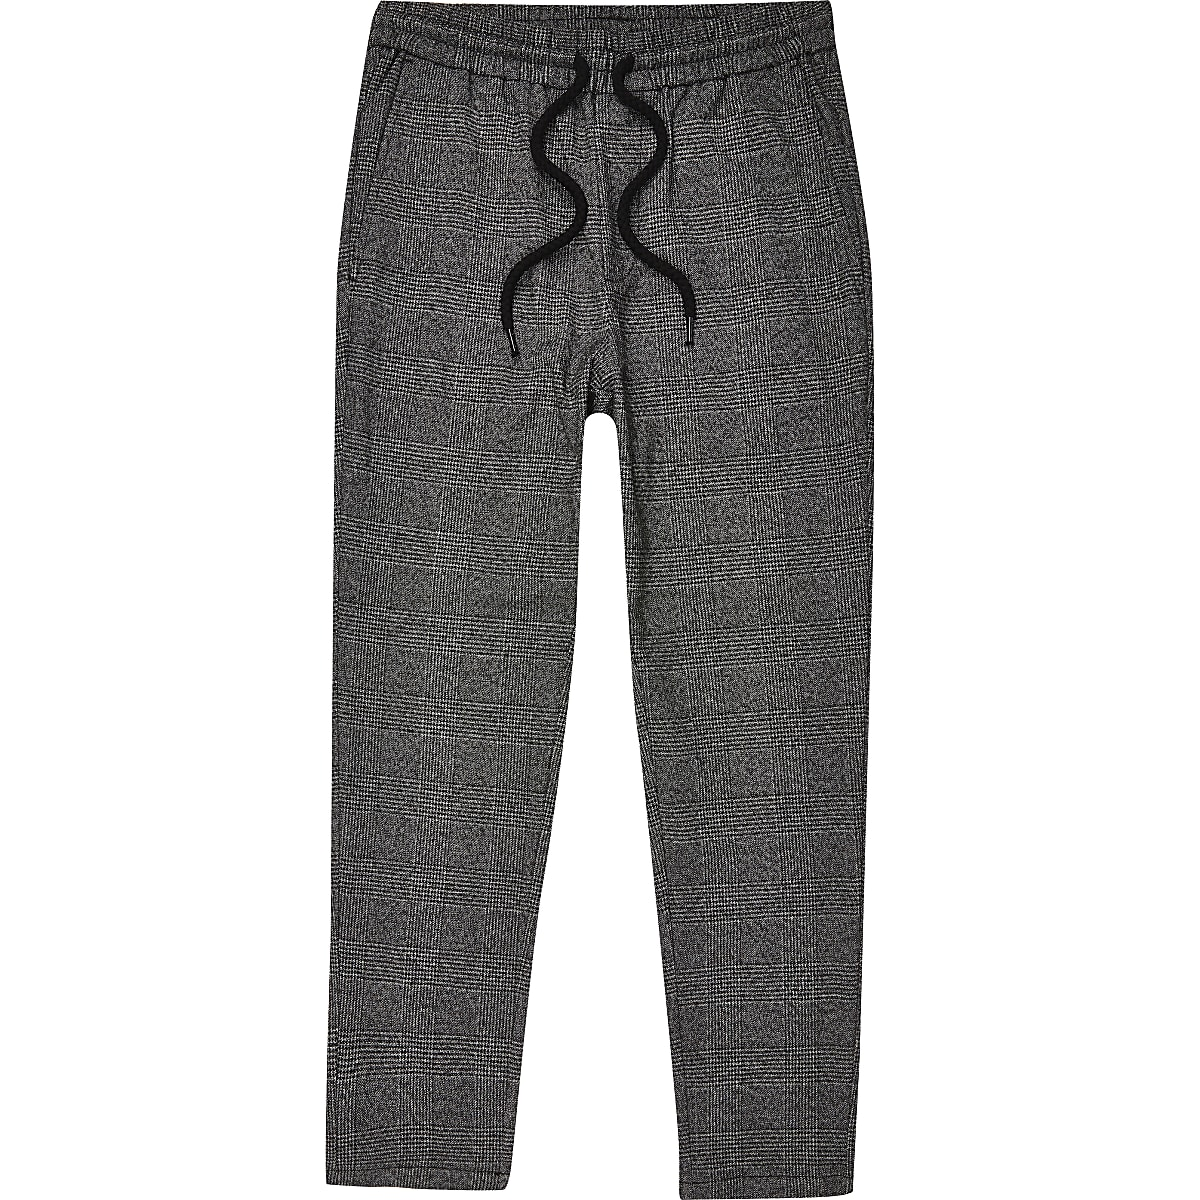 Only & Sons grey check track pants